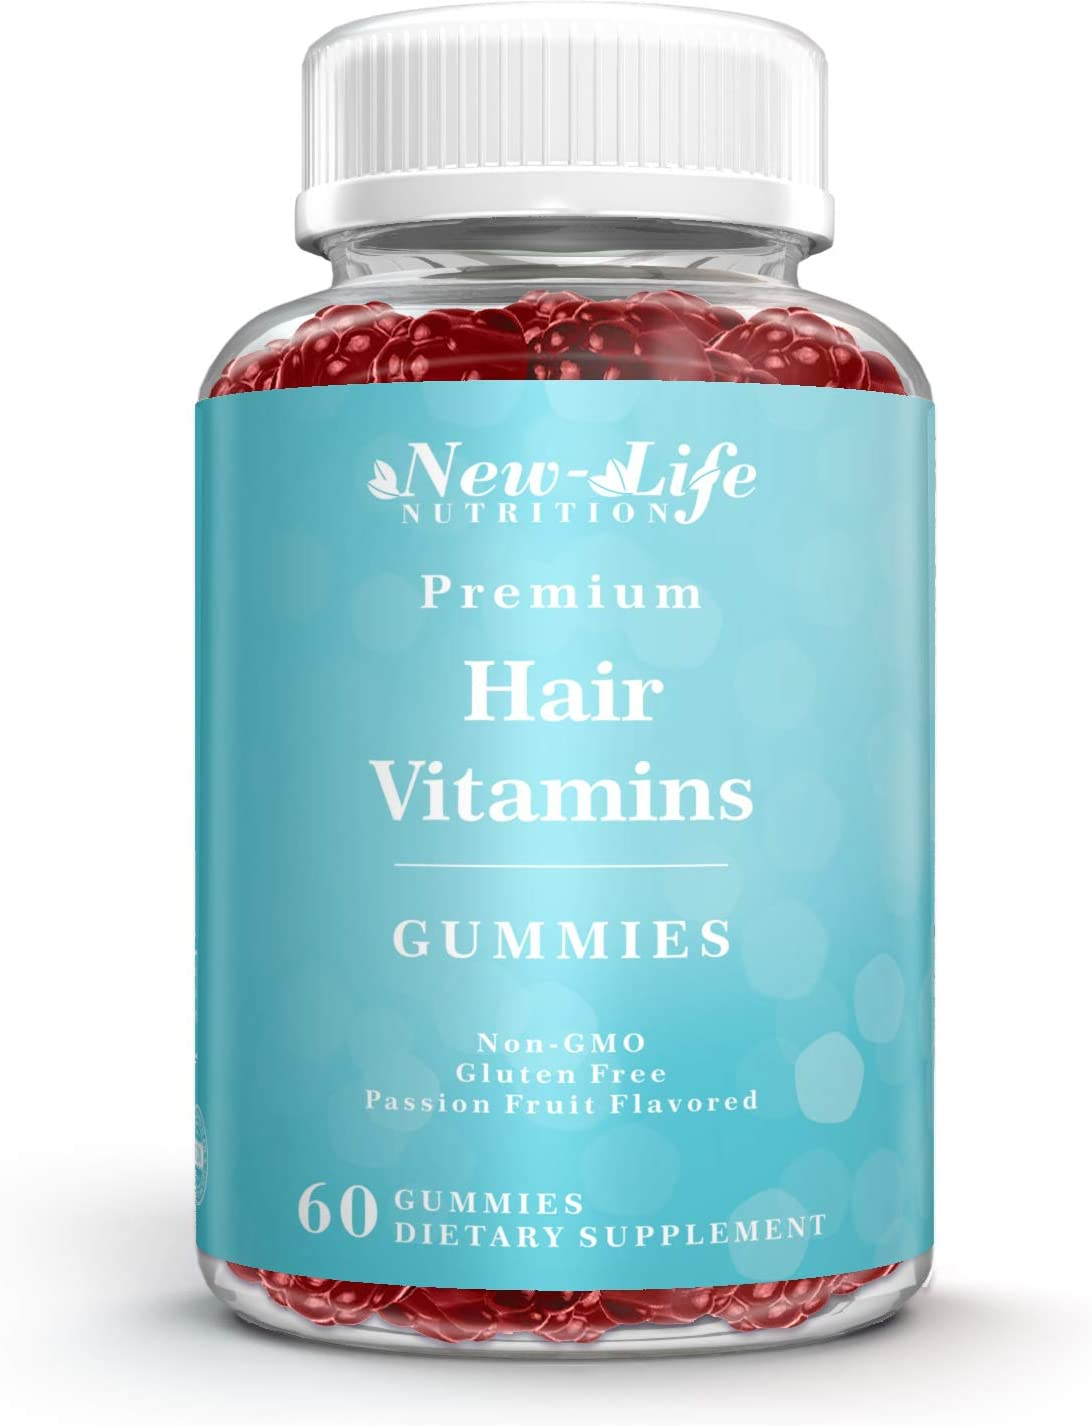 Premium Hair Vitamin Gummies from New-Life Nutrition. High Potency Biotin, Collagen and Other Nutrients for Hair, Skin and Nails.